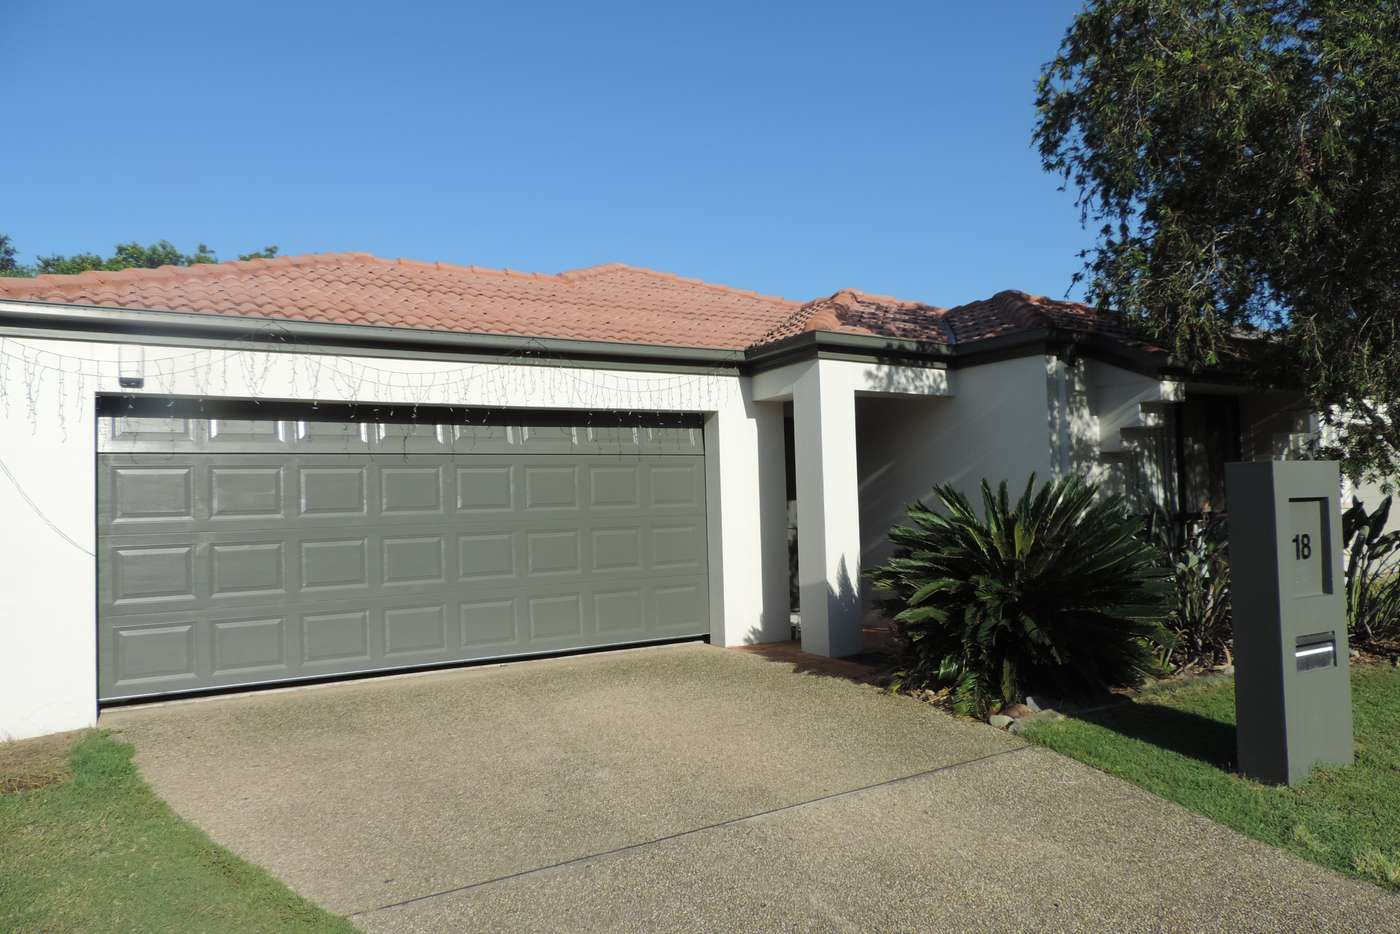 Main view of Homely house listing, 18 Melastoma Way, Arundel QLD 4214